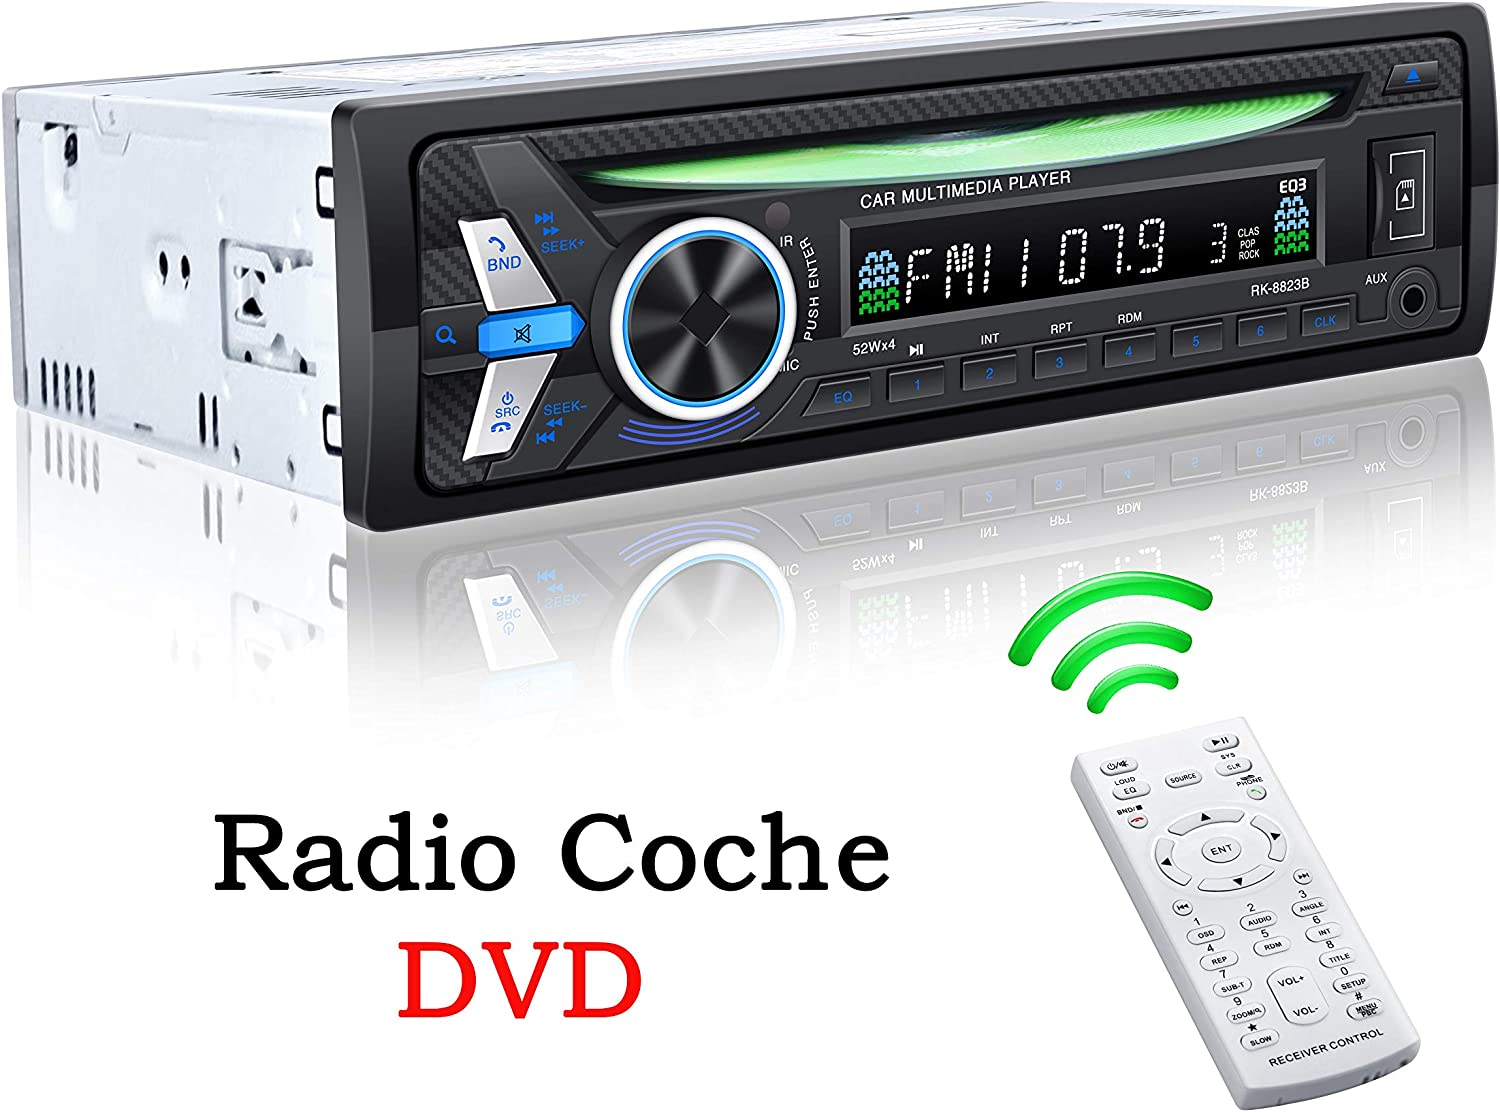 TOYOUSONIC Radio Coche CD 1 DIN Reproductor de DVD MP4 Bluetooth Admite Llamadas Manos Libres/Control Remoto/Radio FM/AUX IN/USB/TF